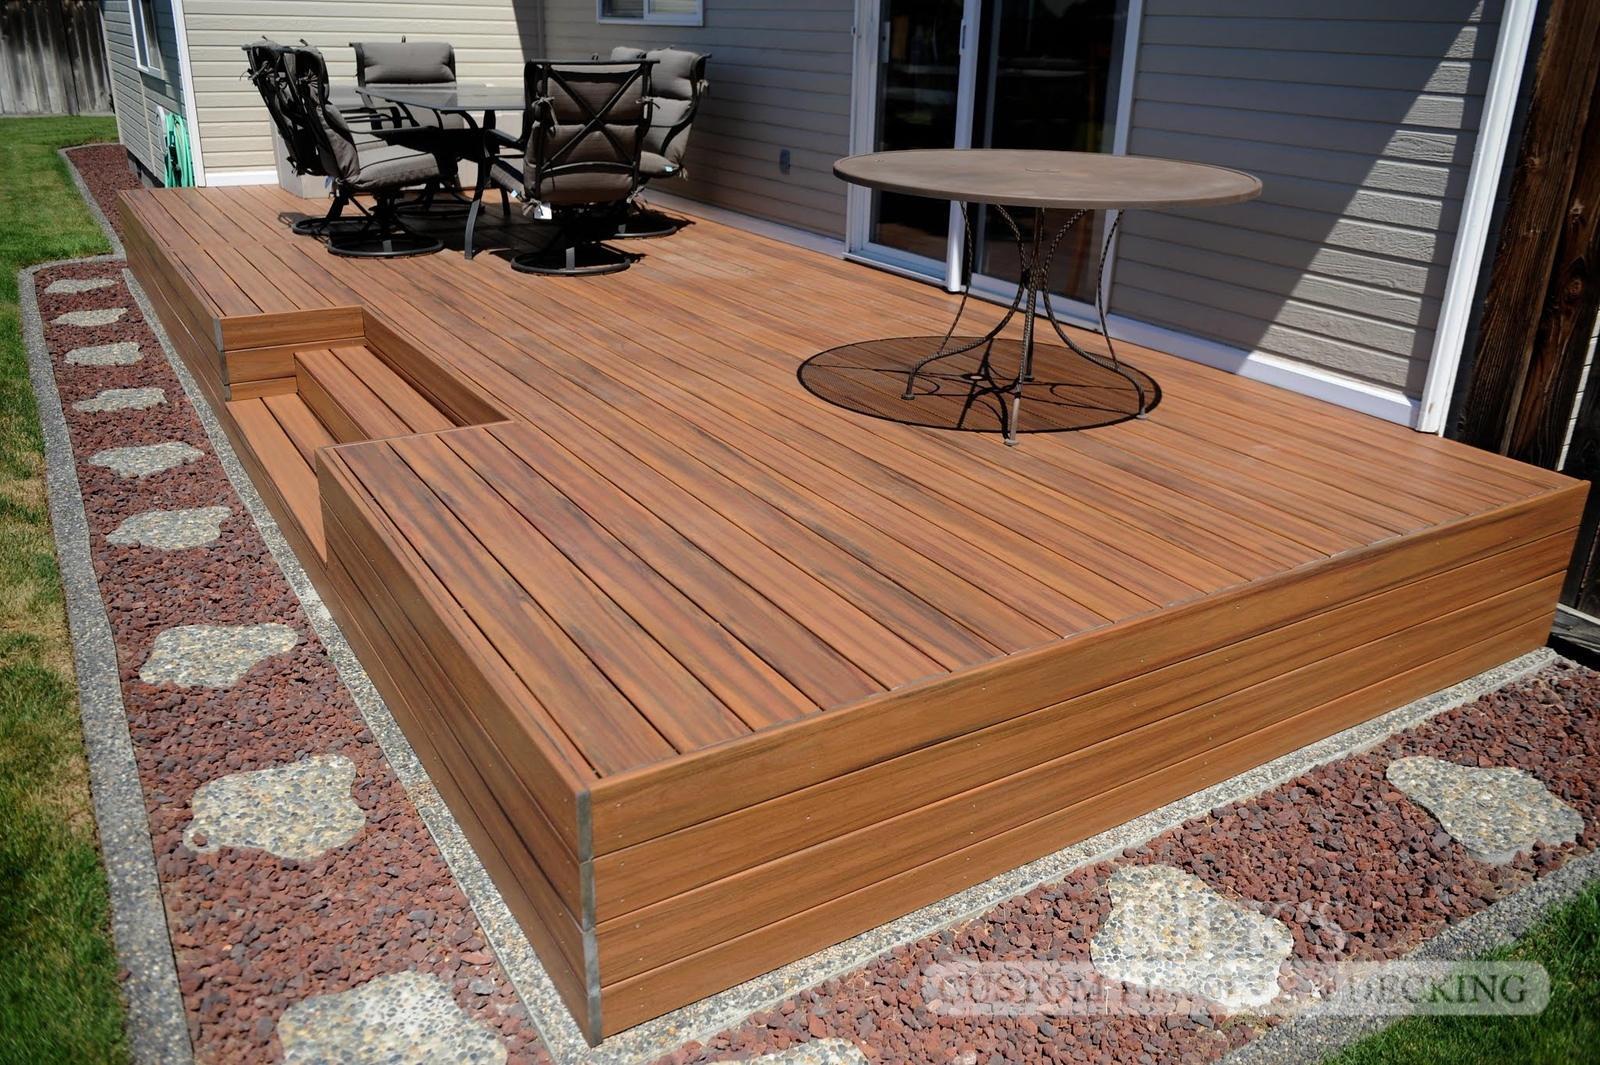 1231 - LifeStyle HDPE Composite Decking